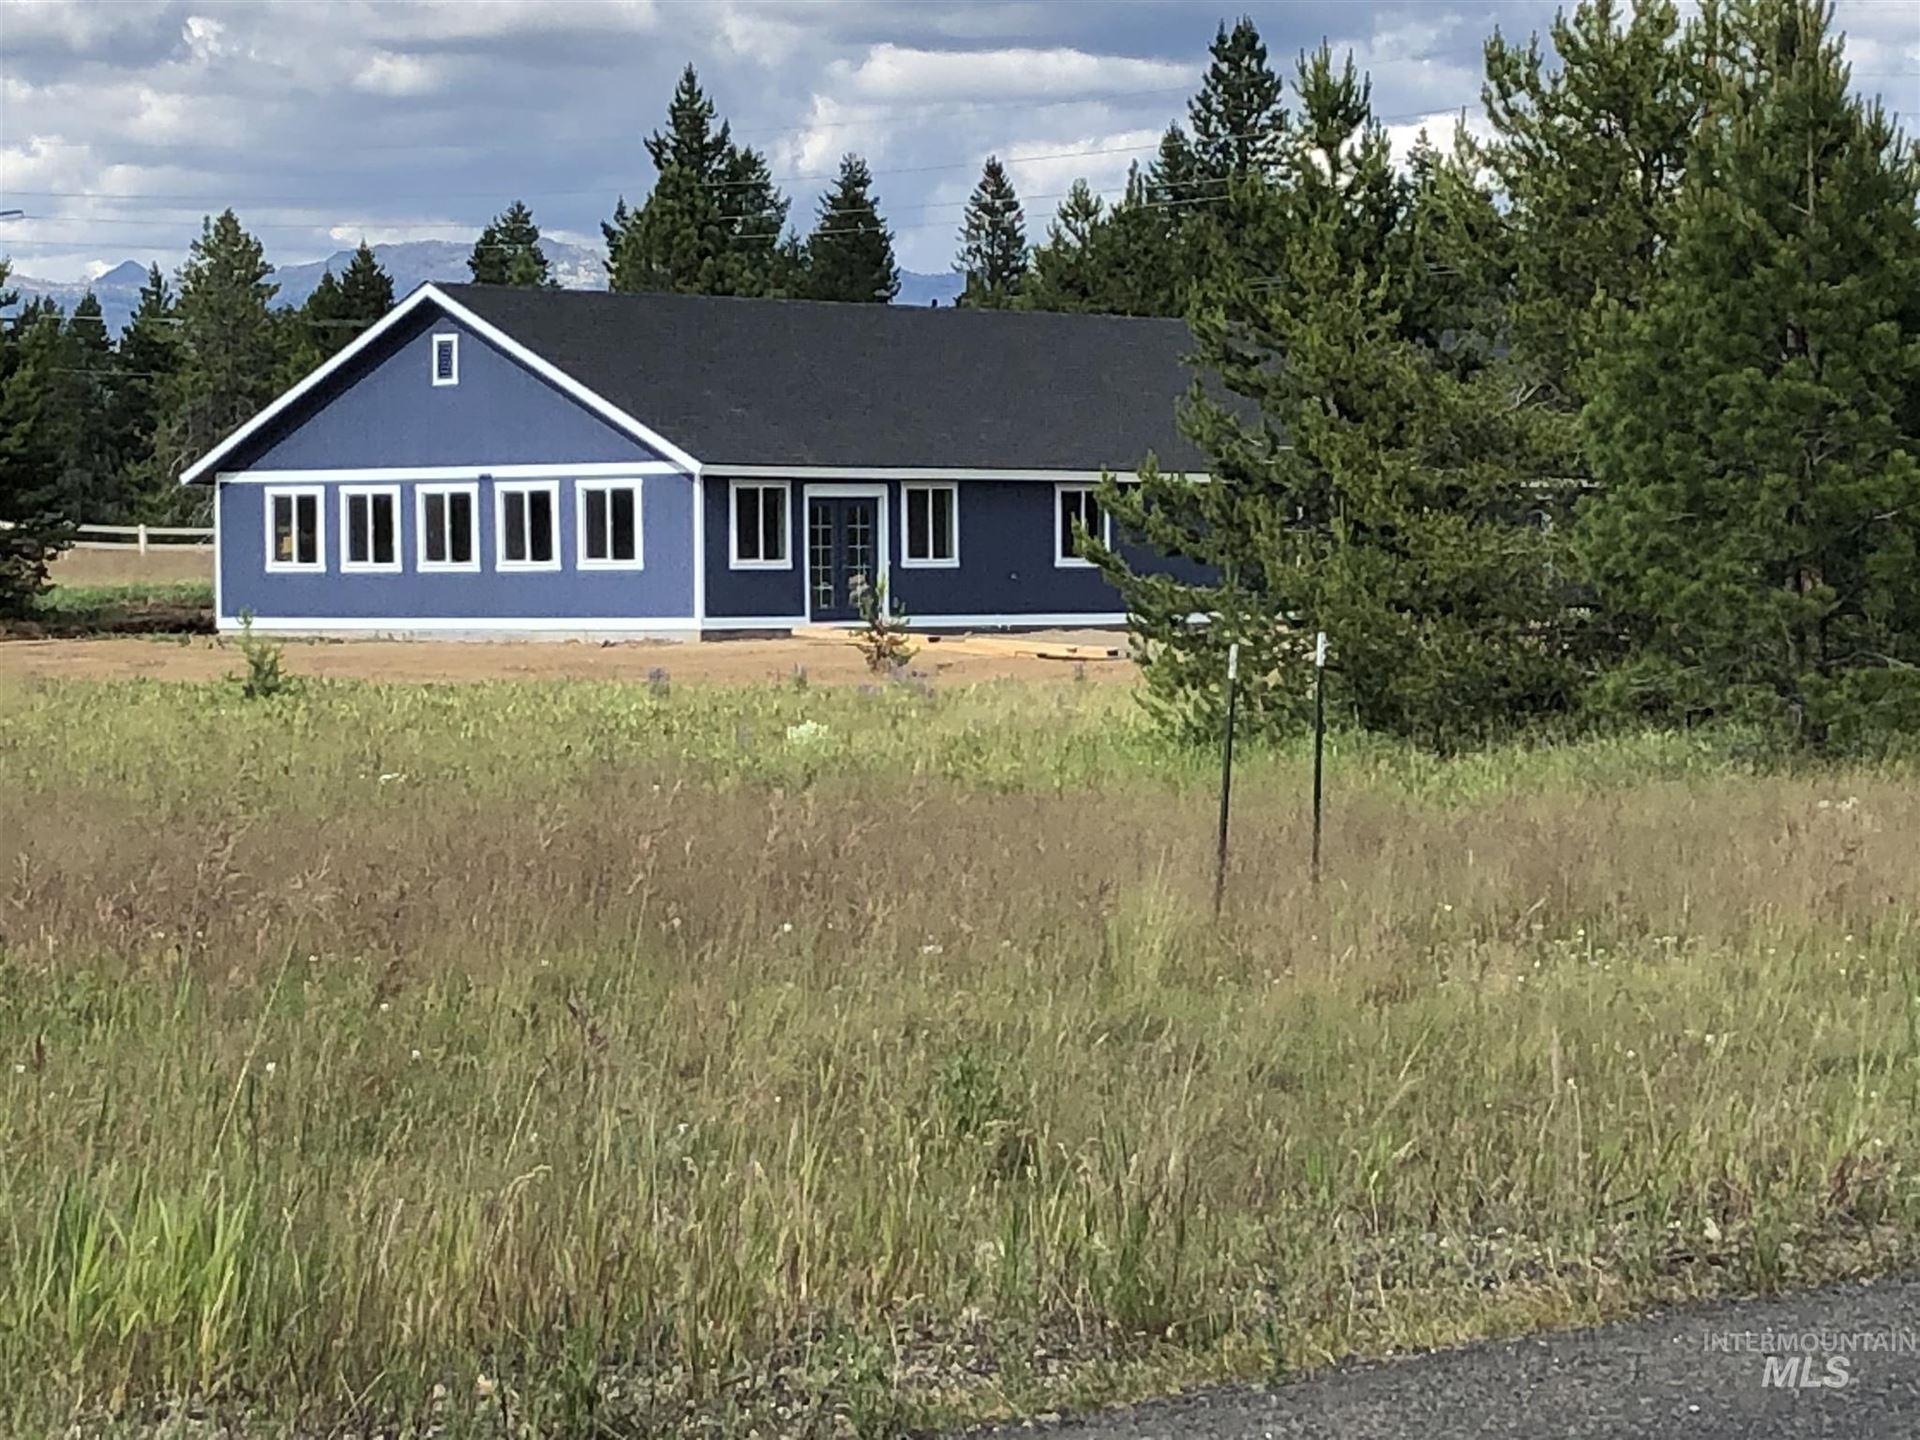 955 Valley View Lane, McCall, ID 83638 - MLS#: 98770691